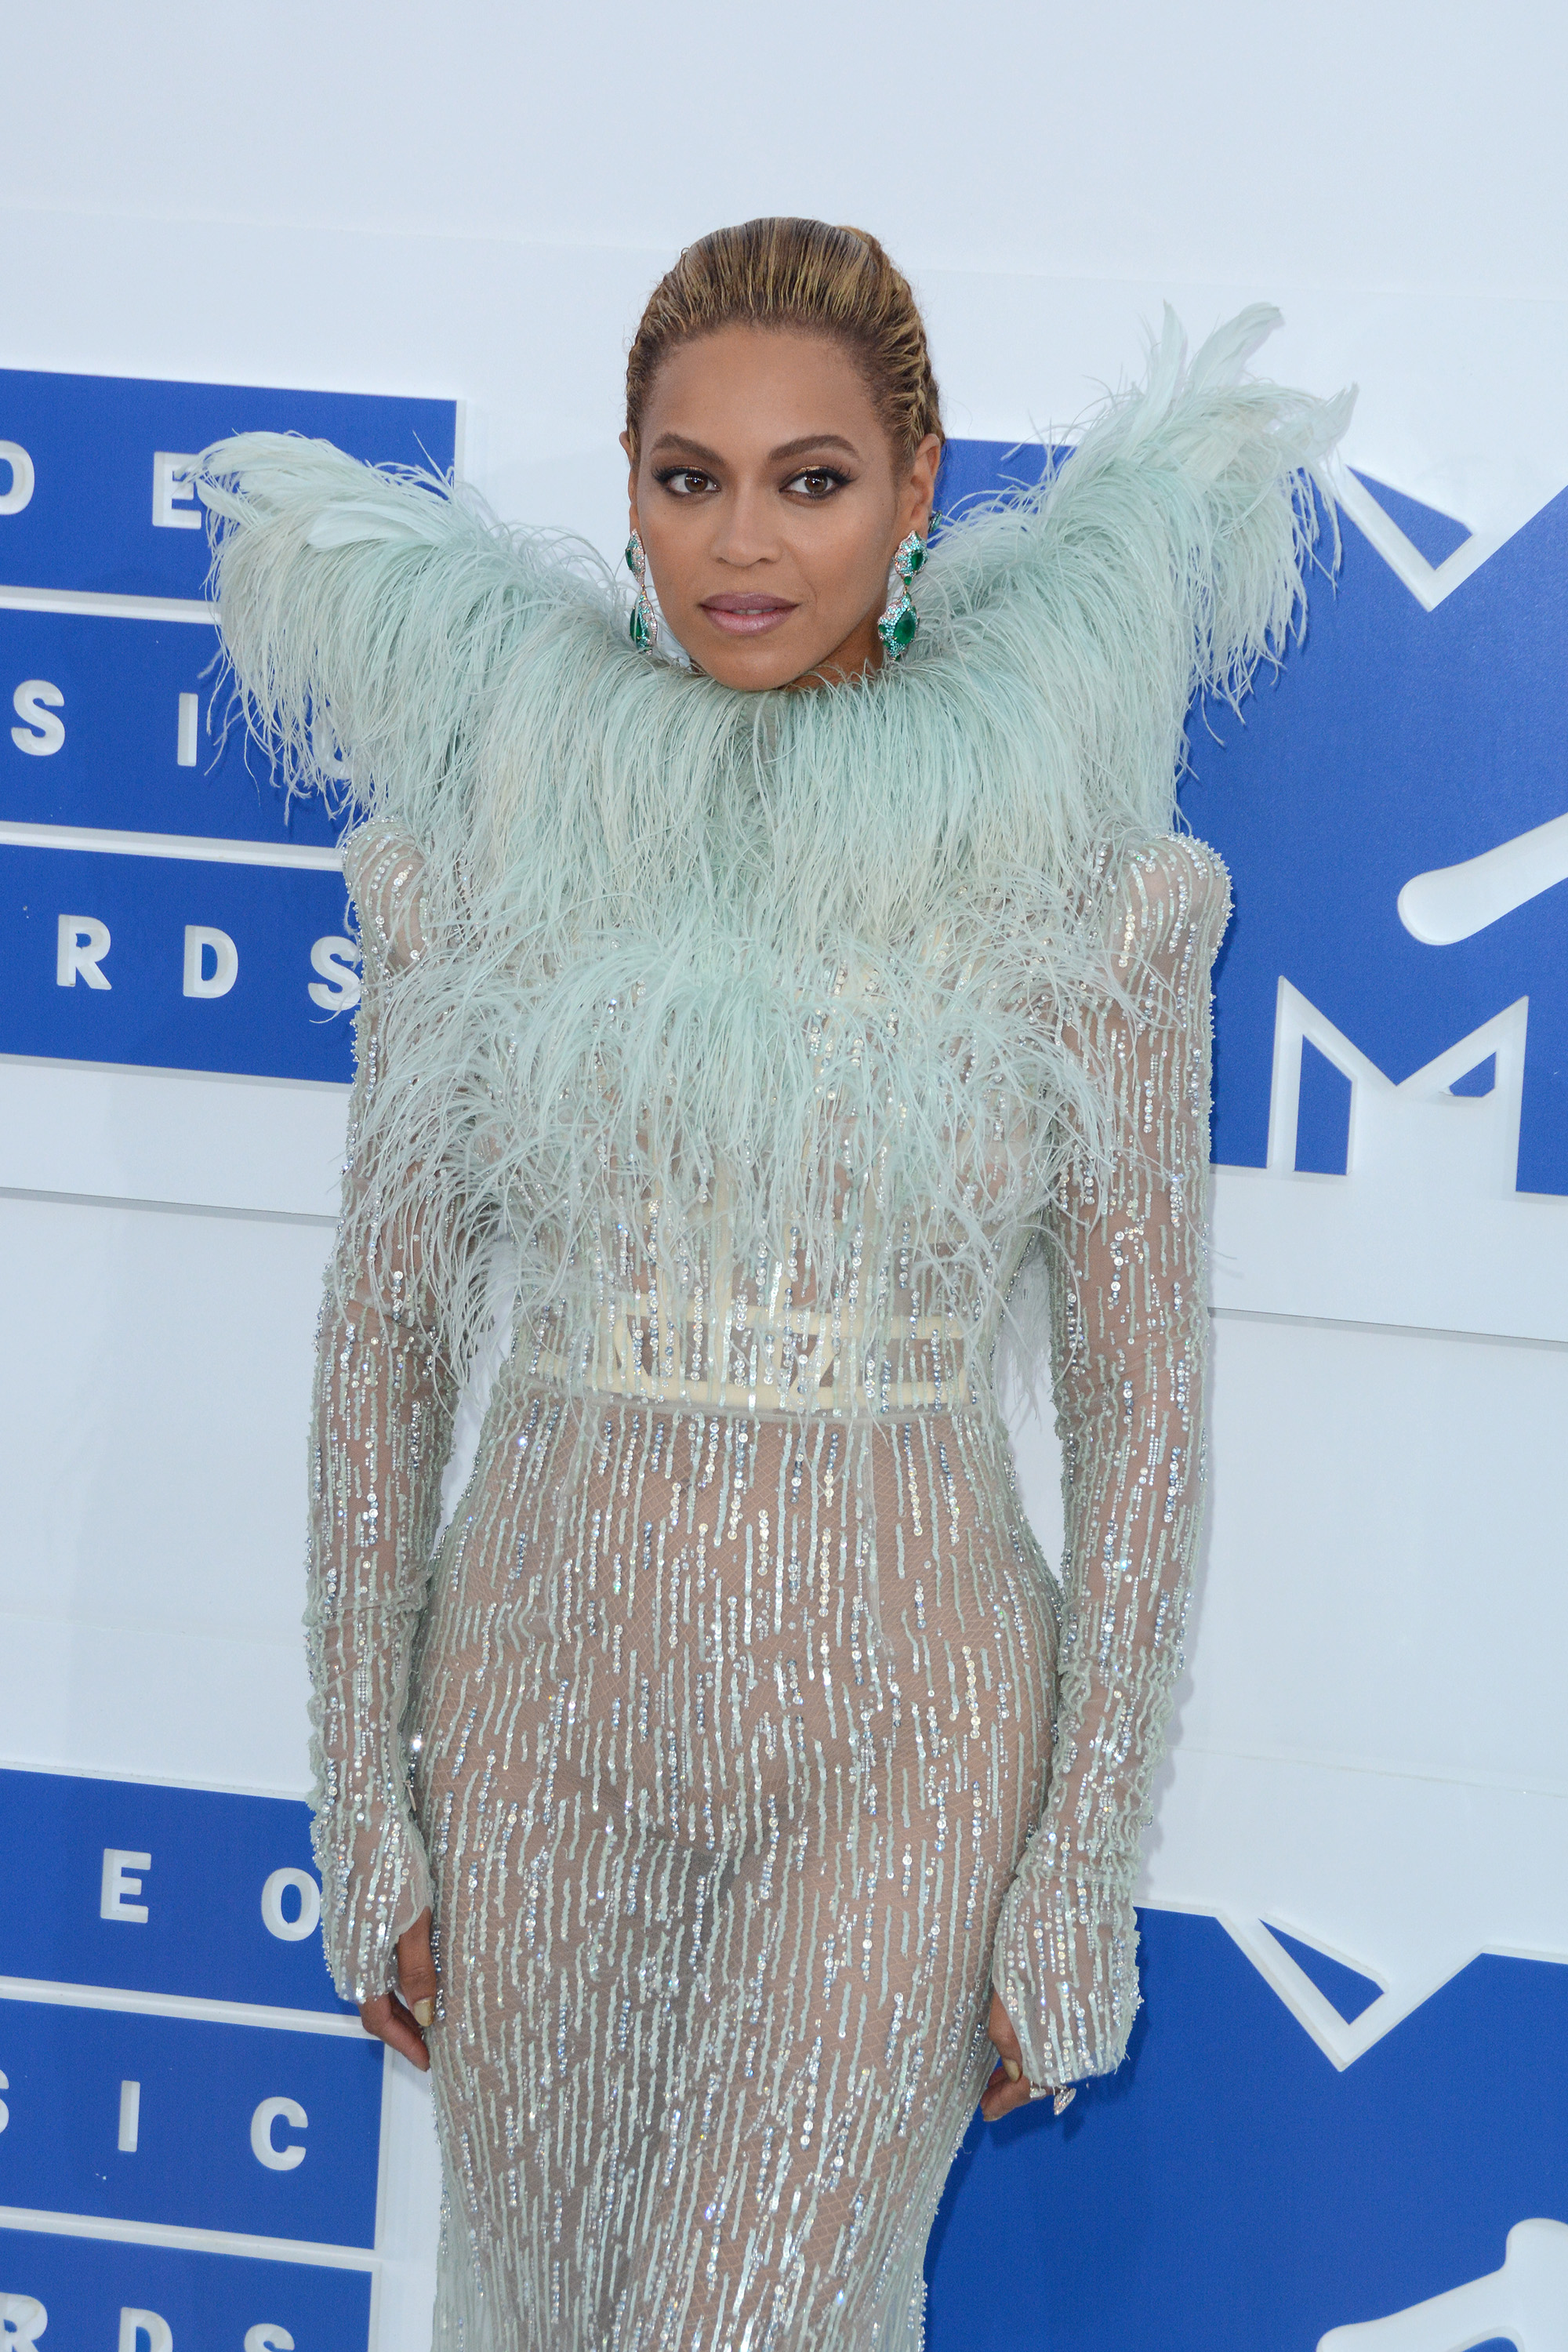 2016 MTV Video Music Awards - Red Carpet Arrivals  Featuring: Beyonce Where: New York, New York, United States When: 29 Aug 2016 Credit: Ivan Nikolov/WENN.com